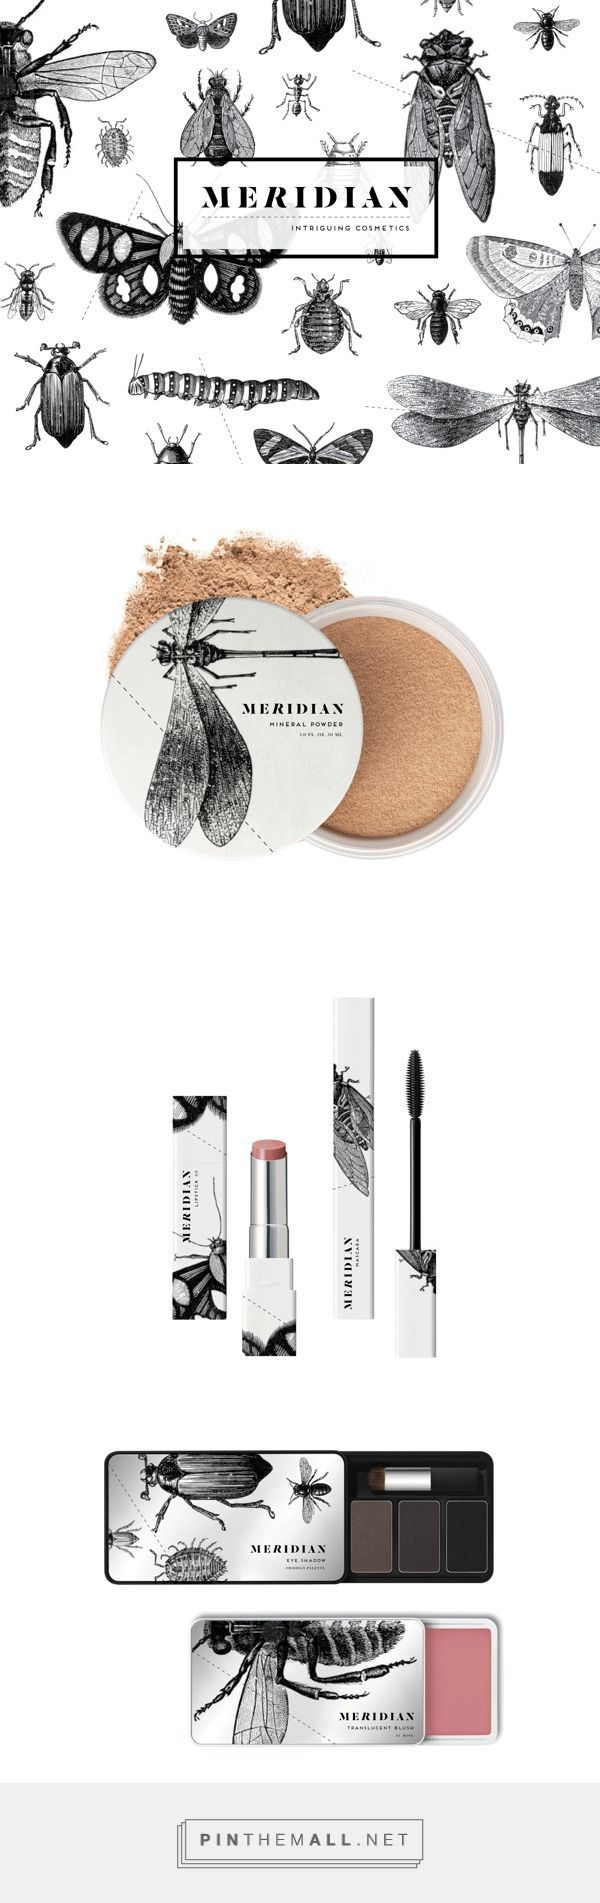 Meridian Cosmetics by Sally Carmichael. Pin curated by #SFields99 #packaging: